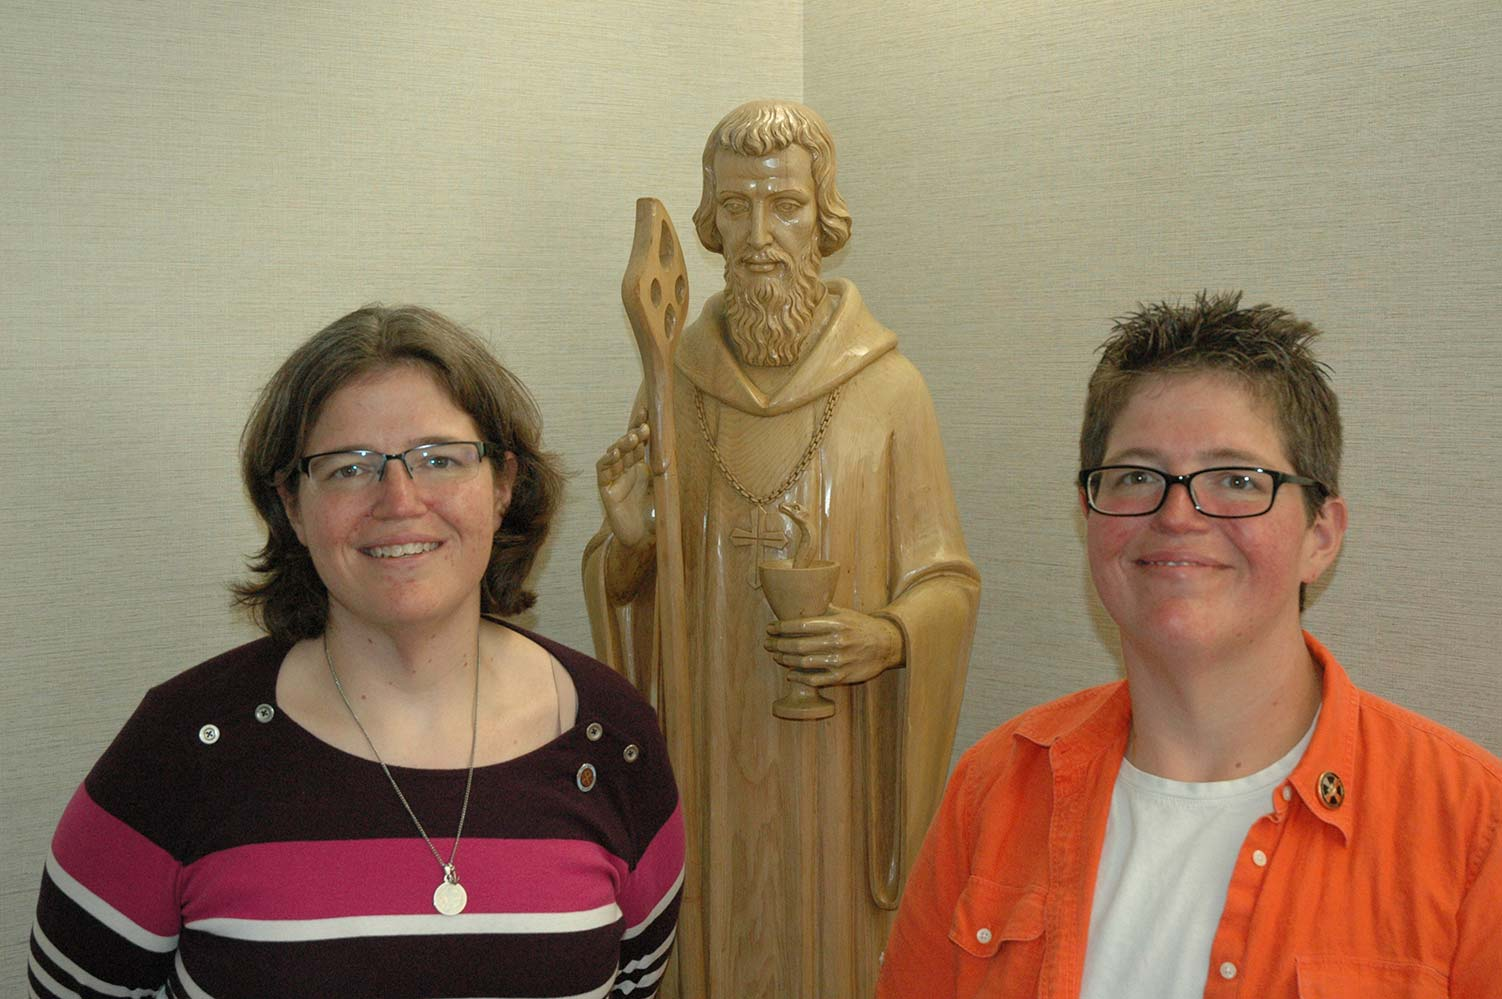 Benedictine Sisters Susan and Jill Reuber, pictured in an undated photo in Indianapolis, have often shared the same path in life, but their roads to their religious vocations took different turns. The y were born within two minutes of each other as part of triplets with their brother Eric. (CNS photo/John Shaughnessy, The Criterion)